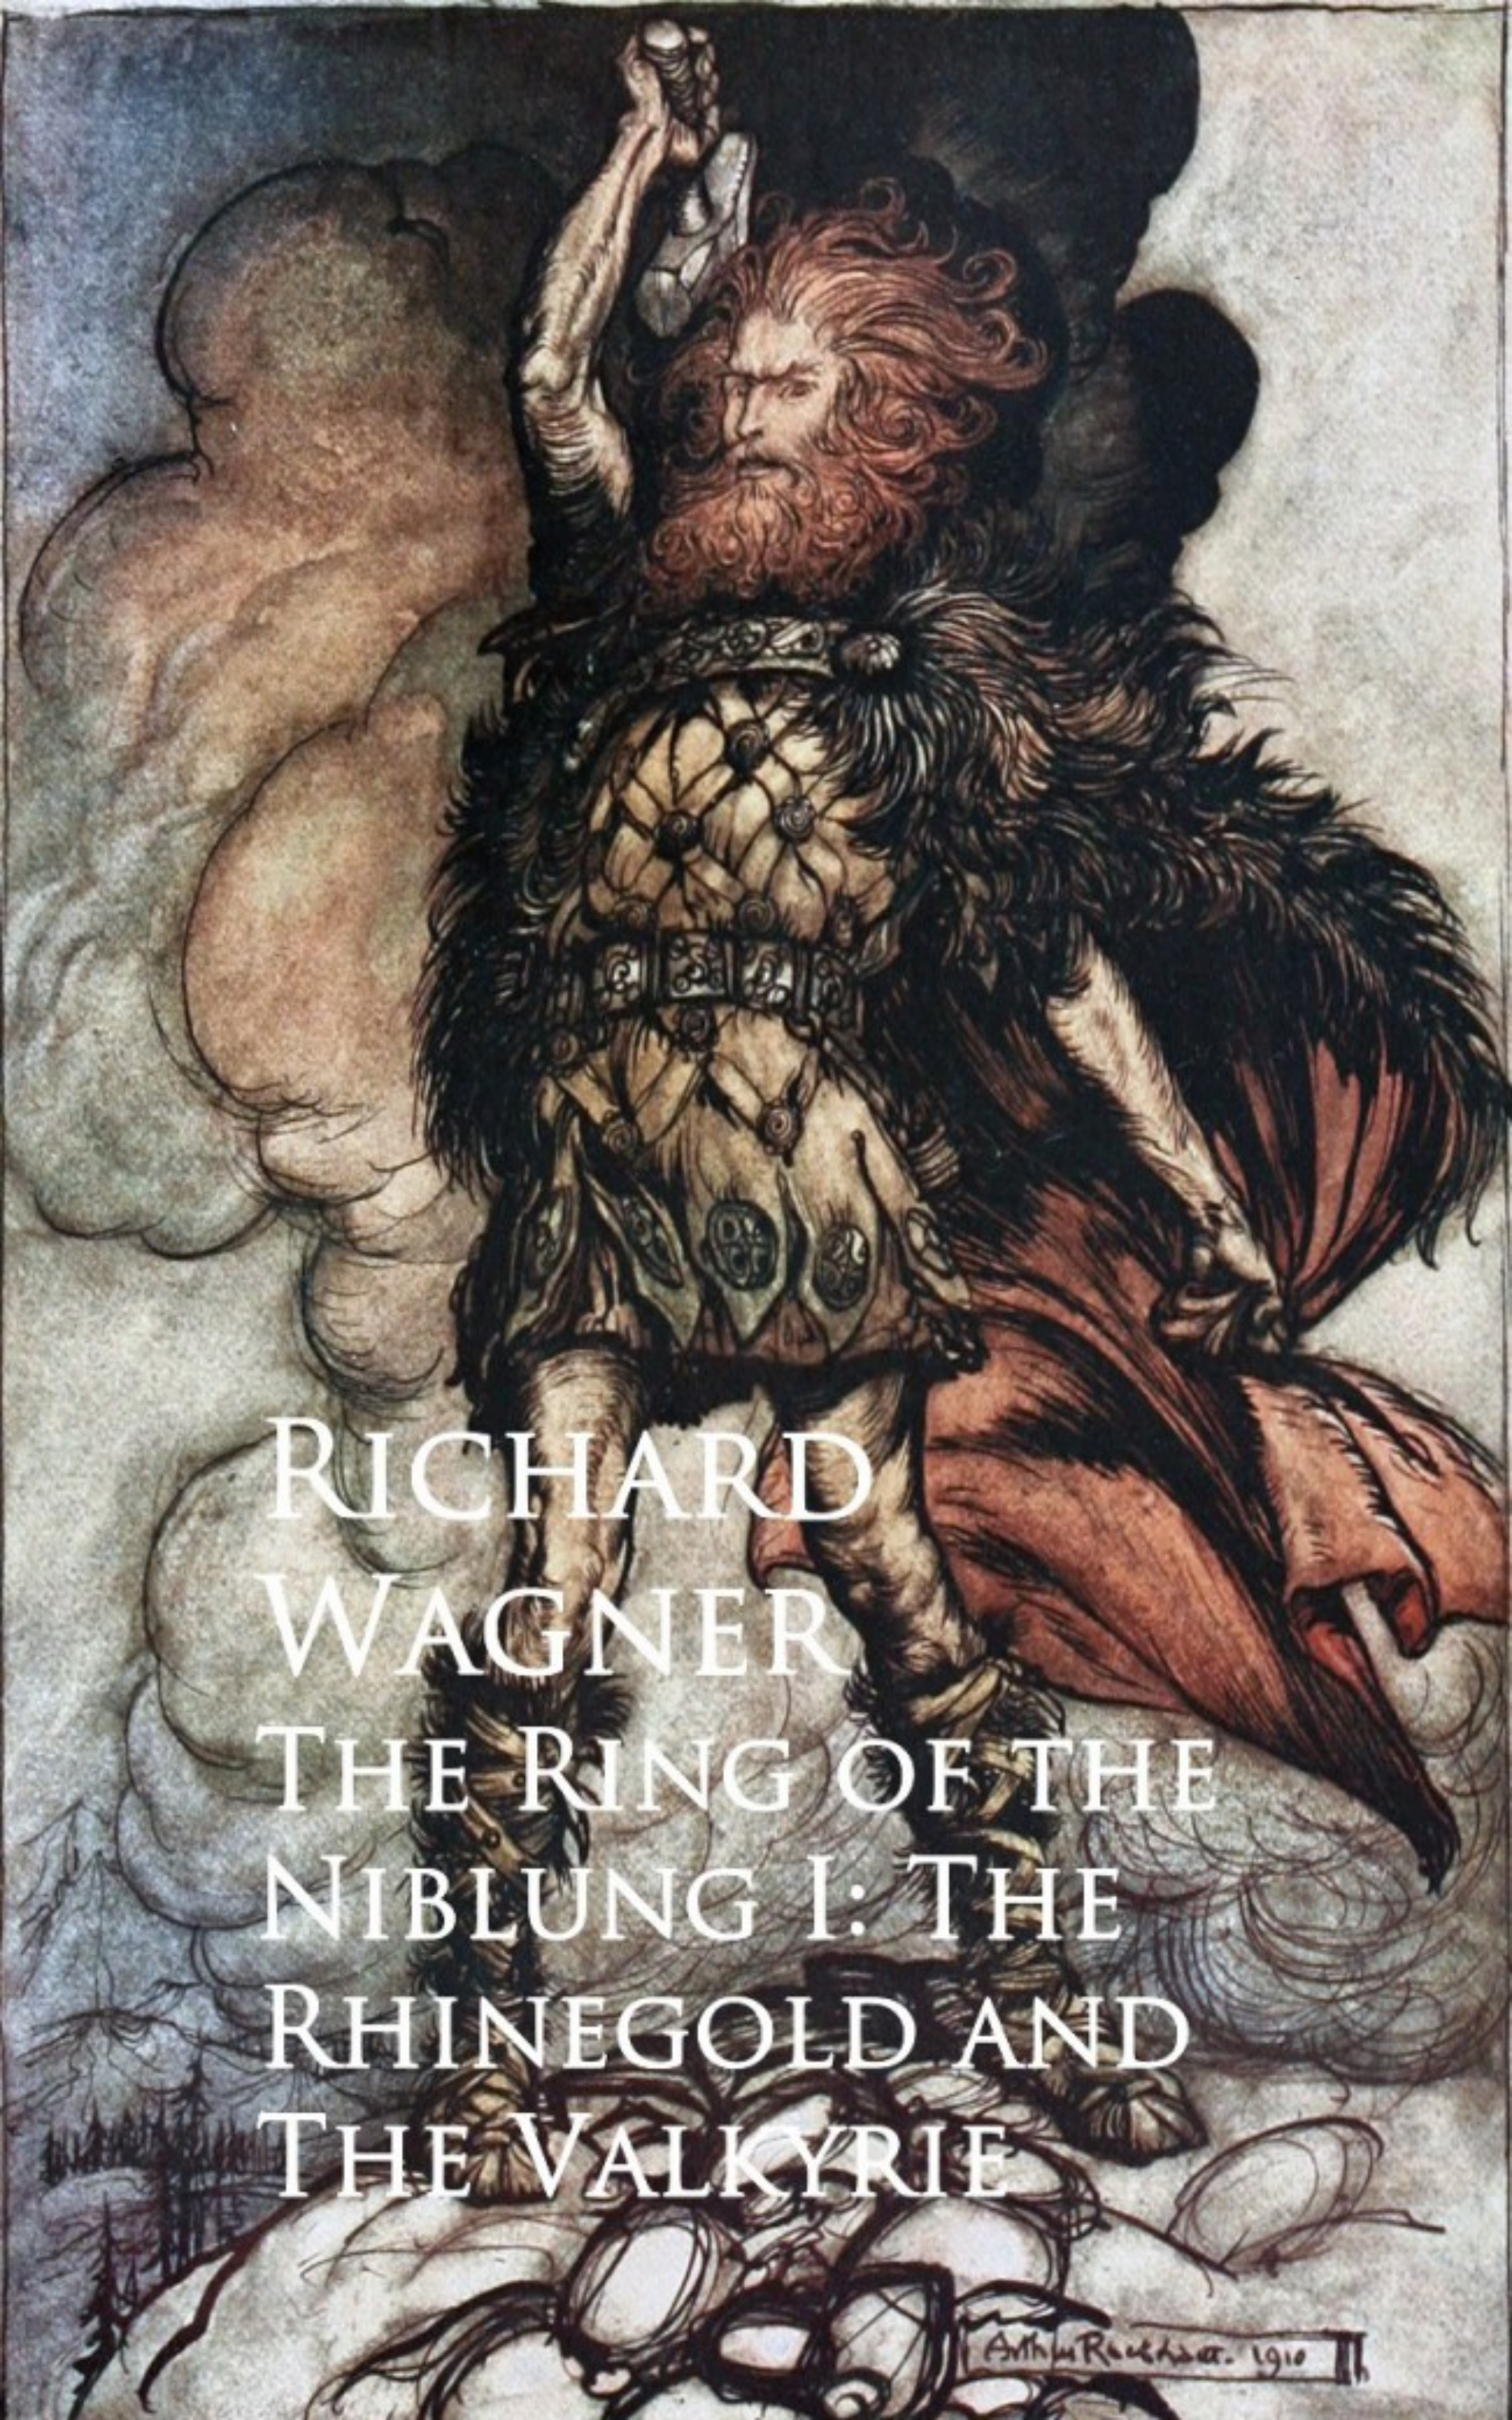 Richard Wagner The Ring of the Niblung I: The Rhinegold and The Valkyrie richard wagner richard mansfield xml all in one desk reference for dummies